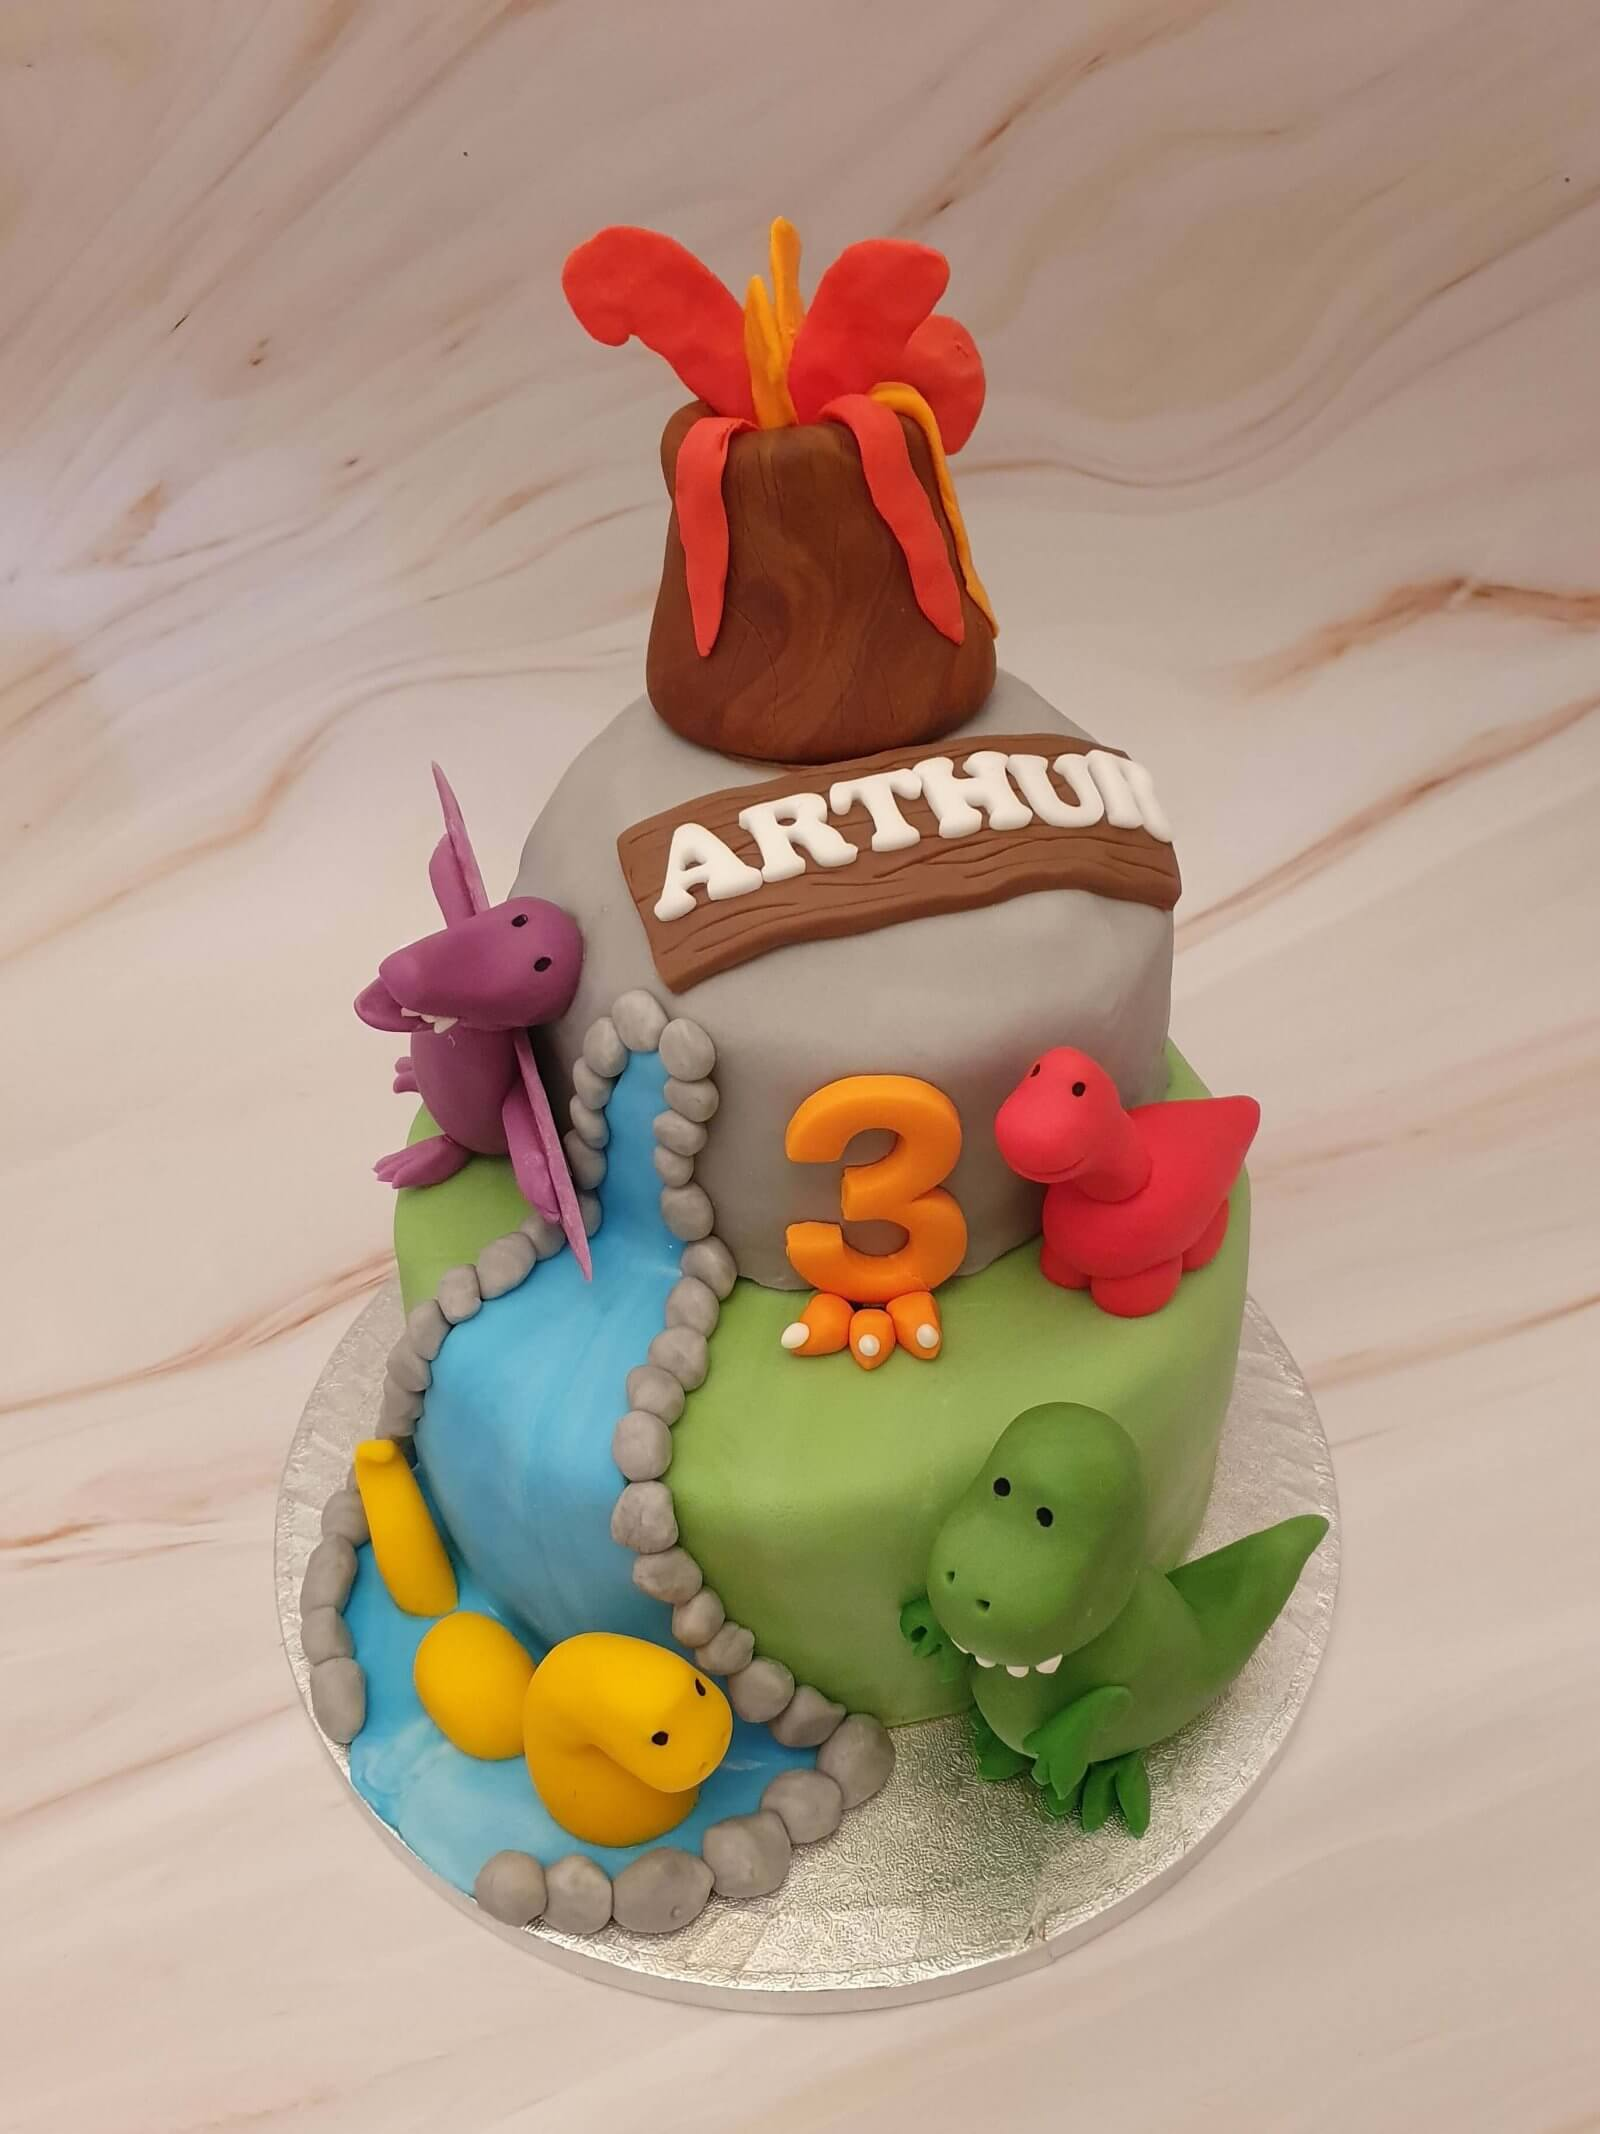 Bespoke Dinosaur Children's Birthday Cake delivery Milton Keynes with multi coloured dinosaurs and an exploding volcano on top